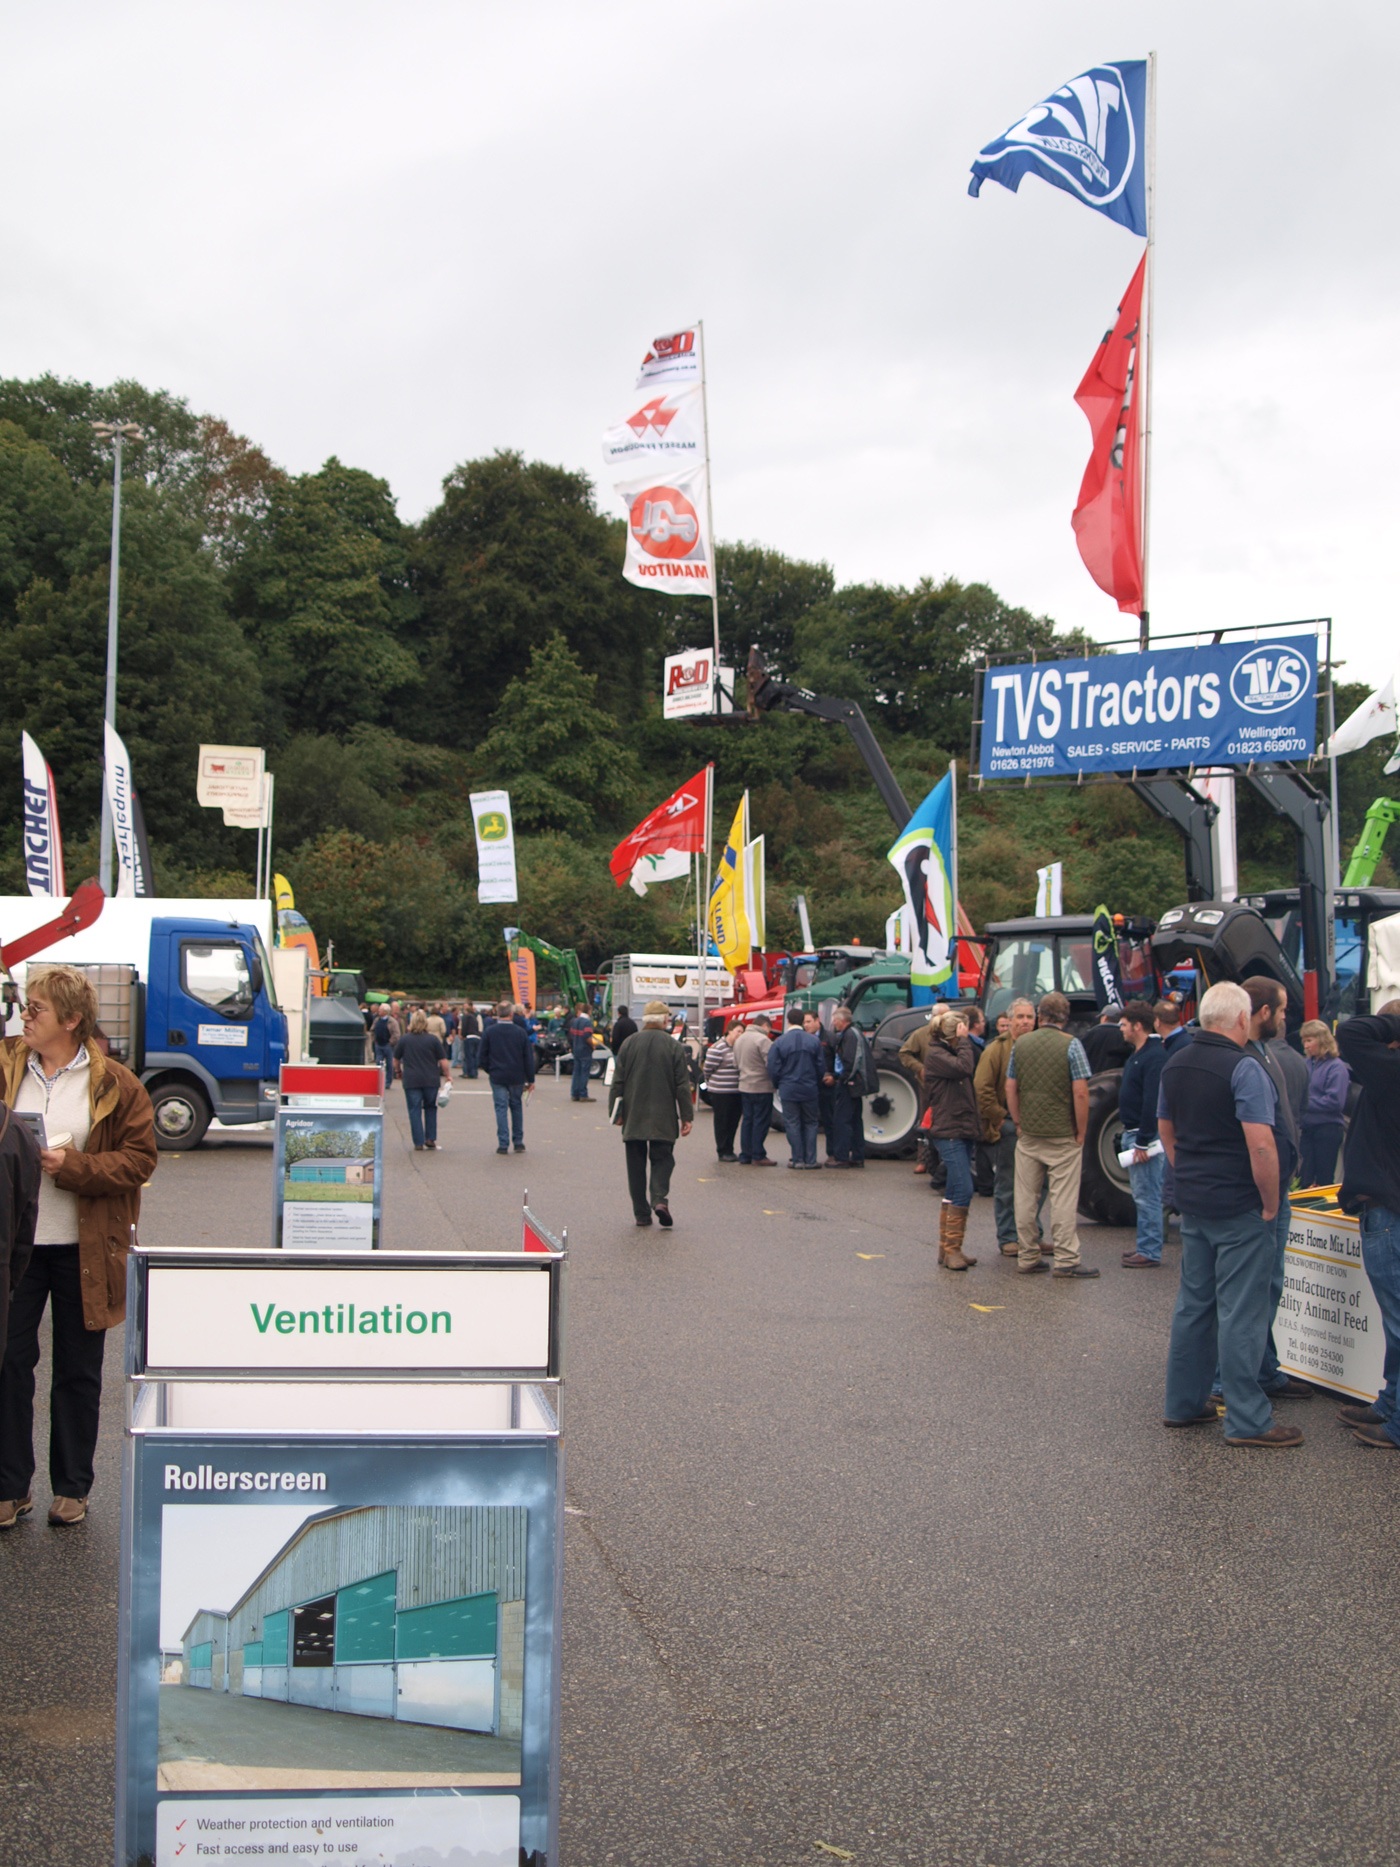 Outside Trade Stands